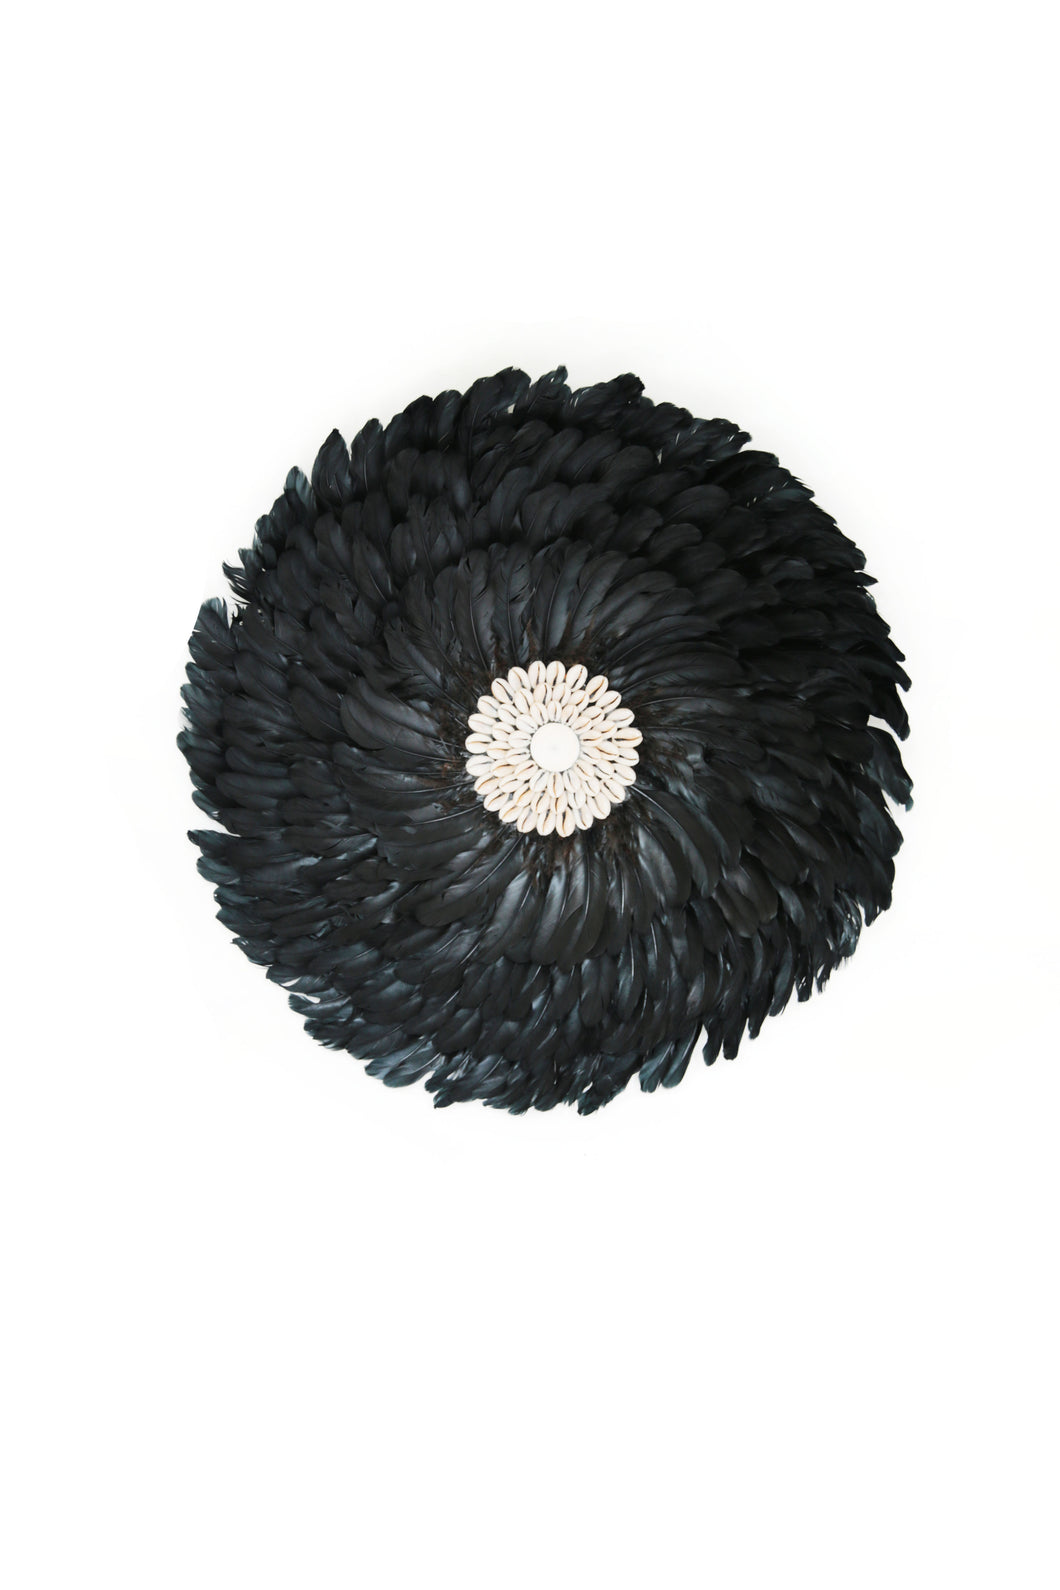 BLACK FEATHERS AND SHELL  WALL DECOR SMALL